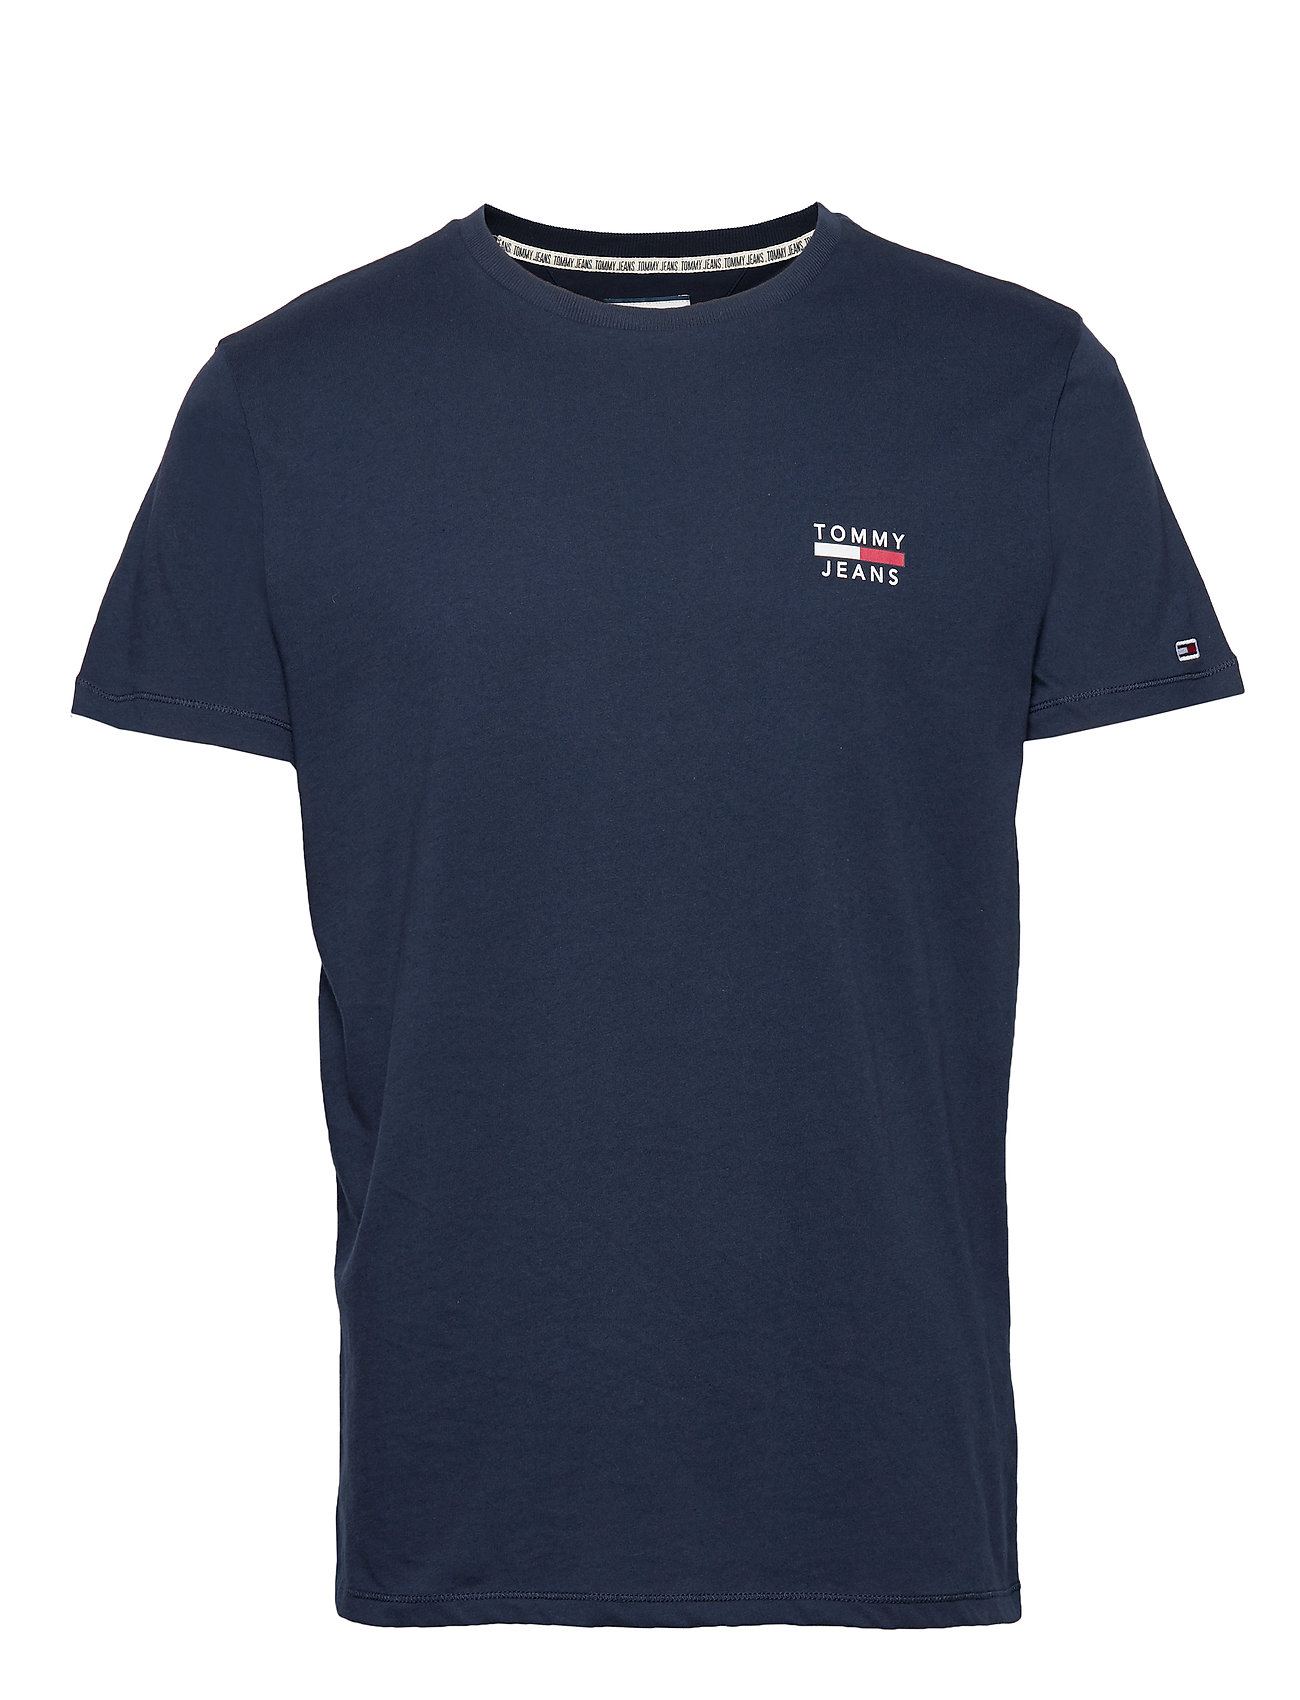 Tjw Square Logo Tee T shirt Top Blå Tommy Jeans 3209018307